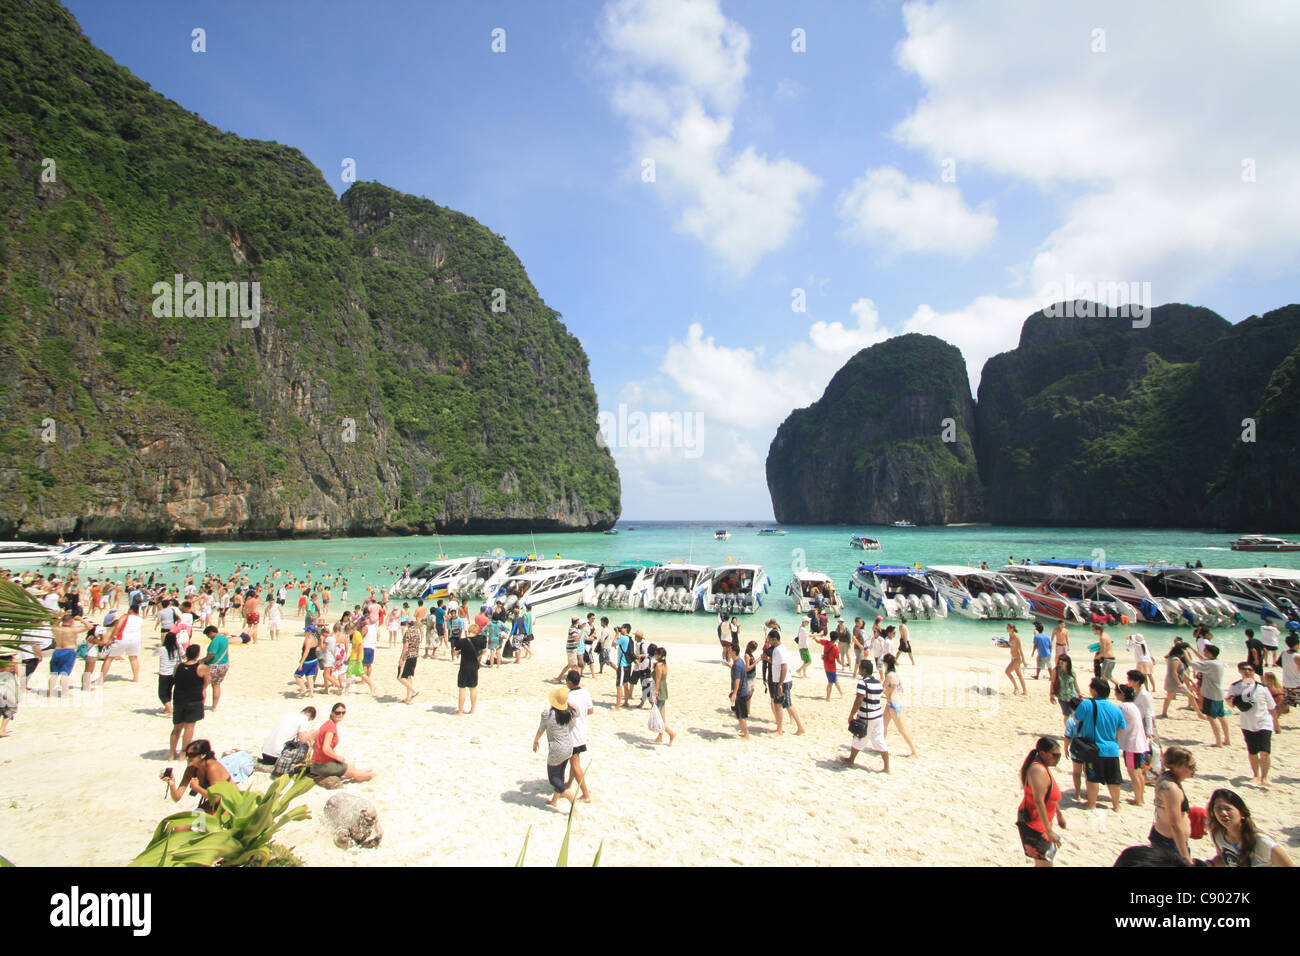 The Beach crowds, Thailand - Stock Image